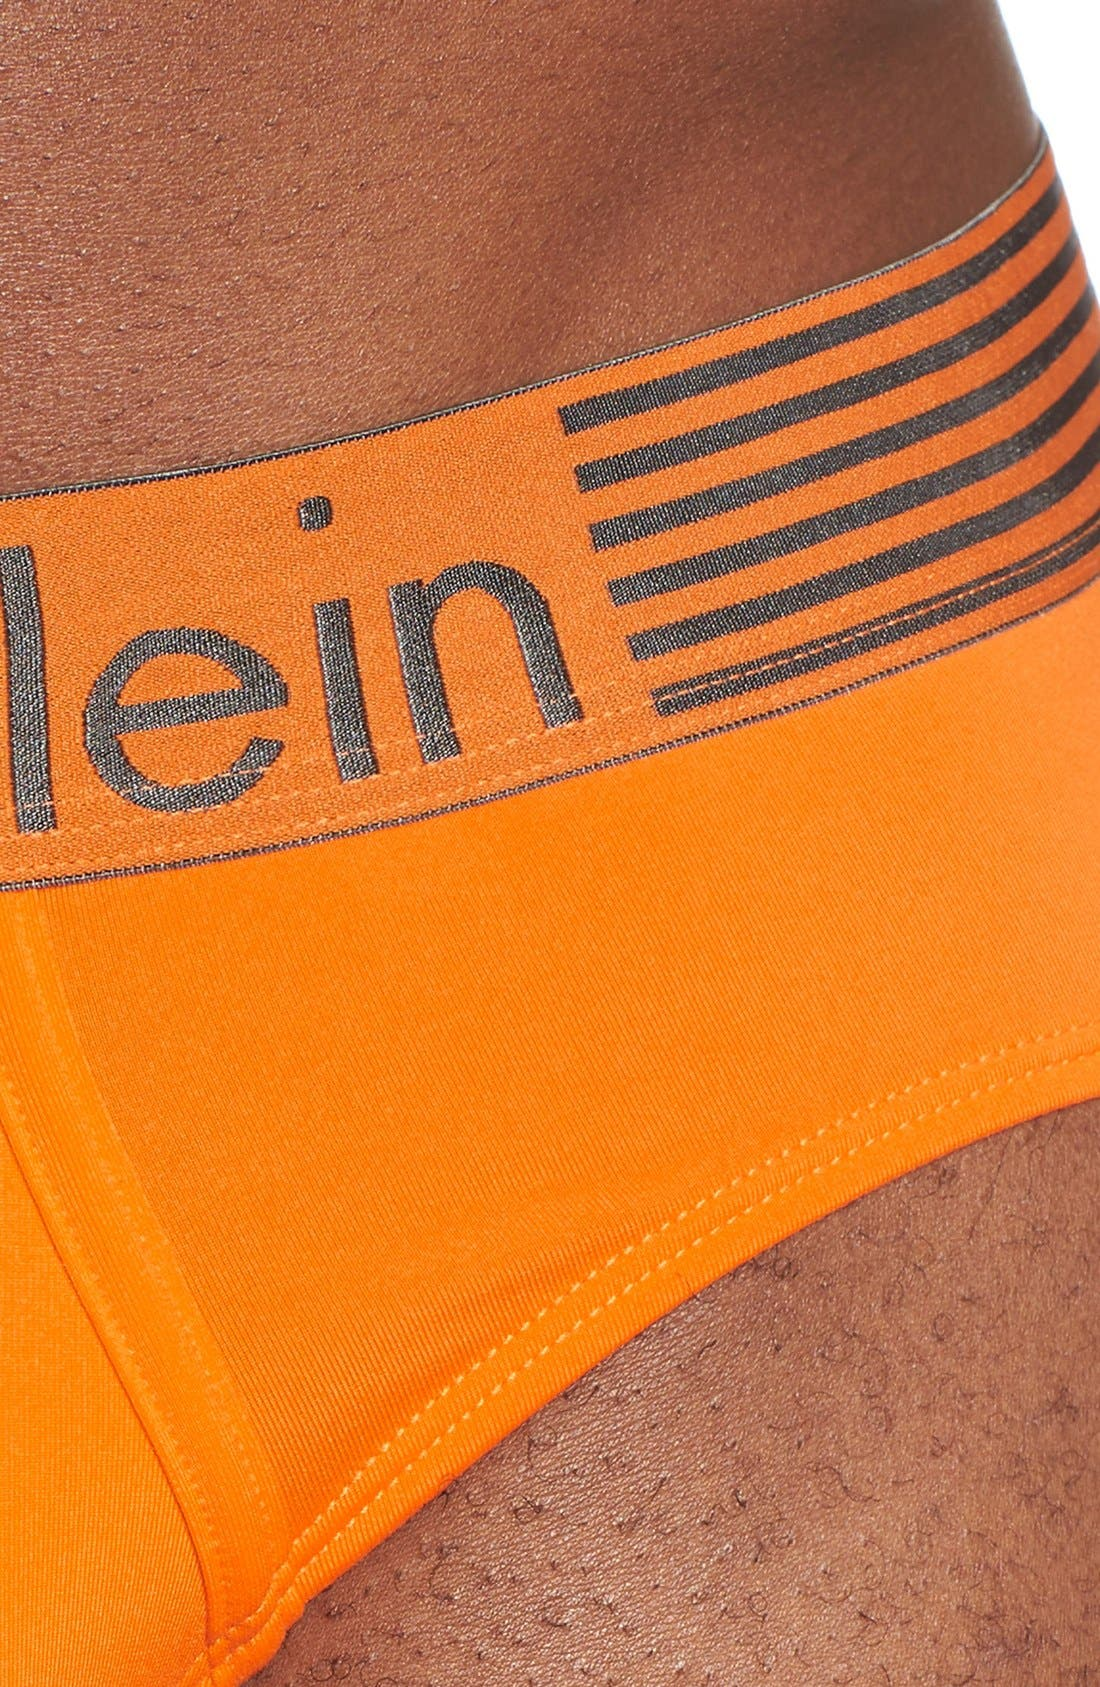 Iron Strength Briefs,                             Alternate thumbnail 28, color,